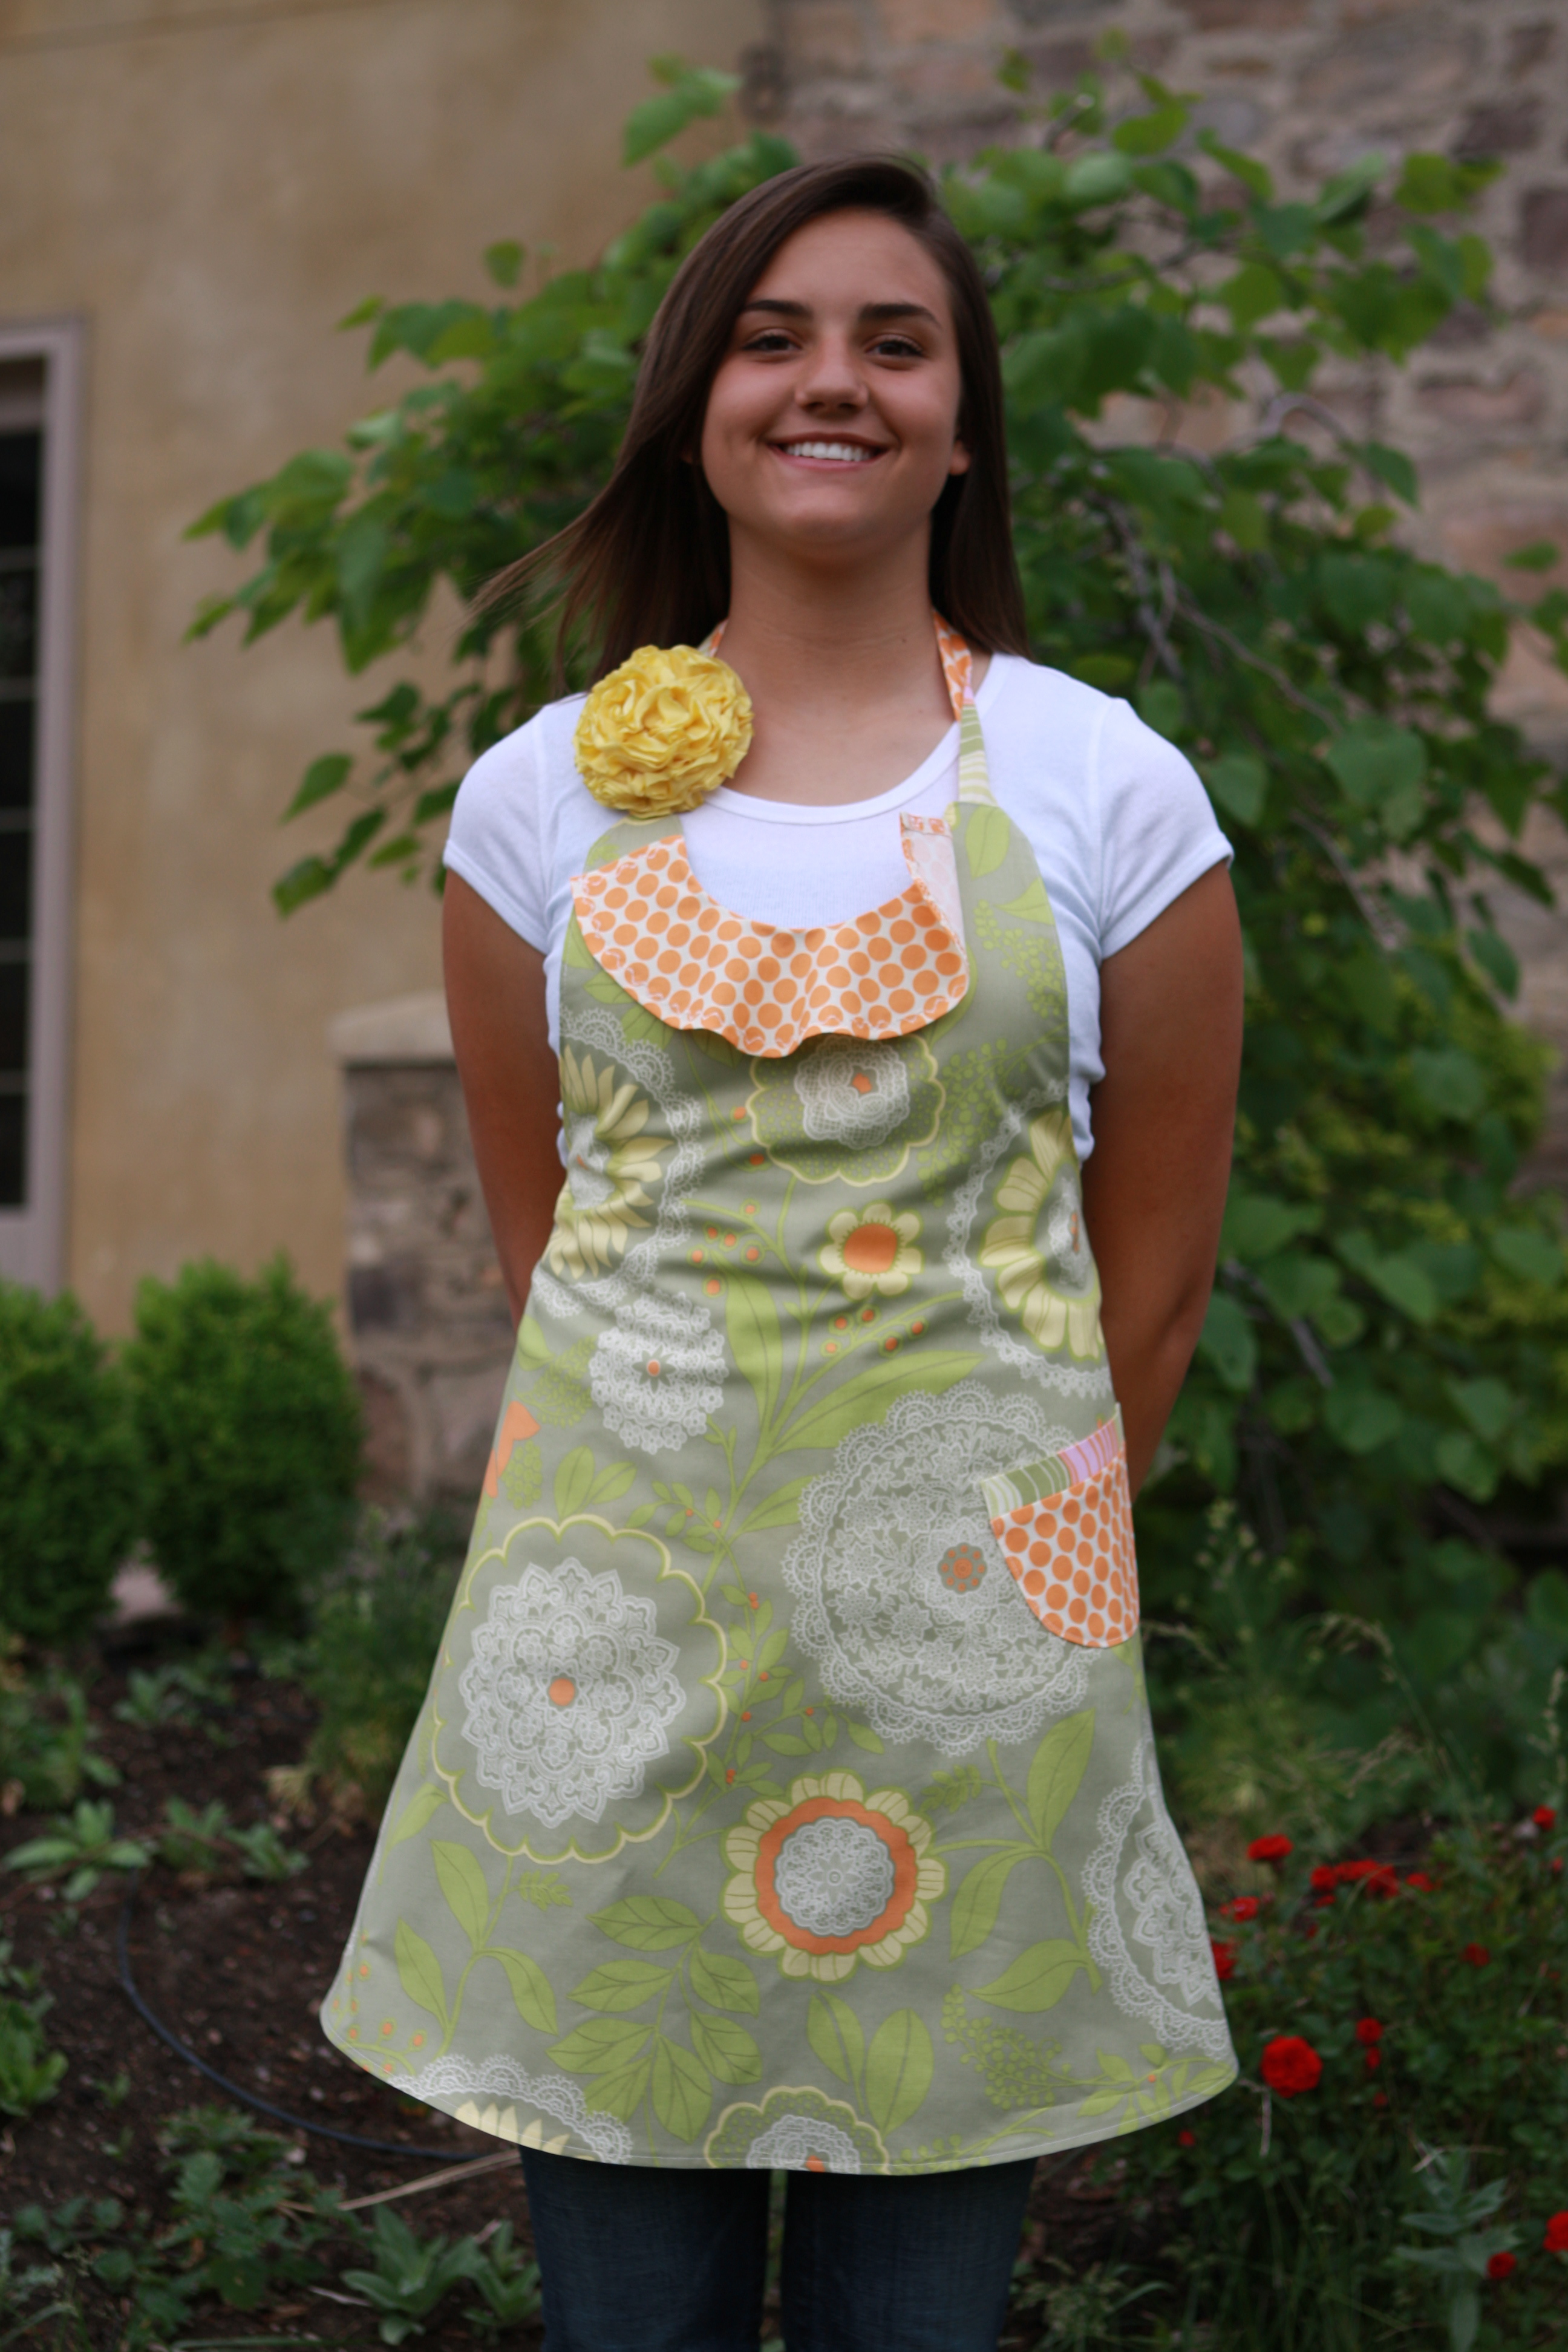 Apron for Mother